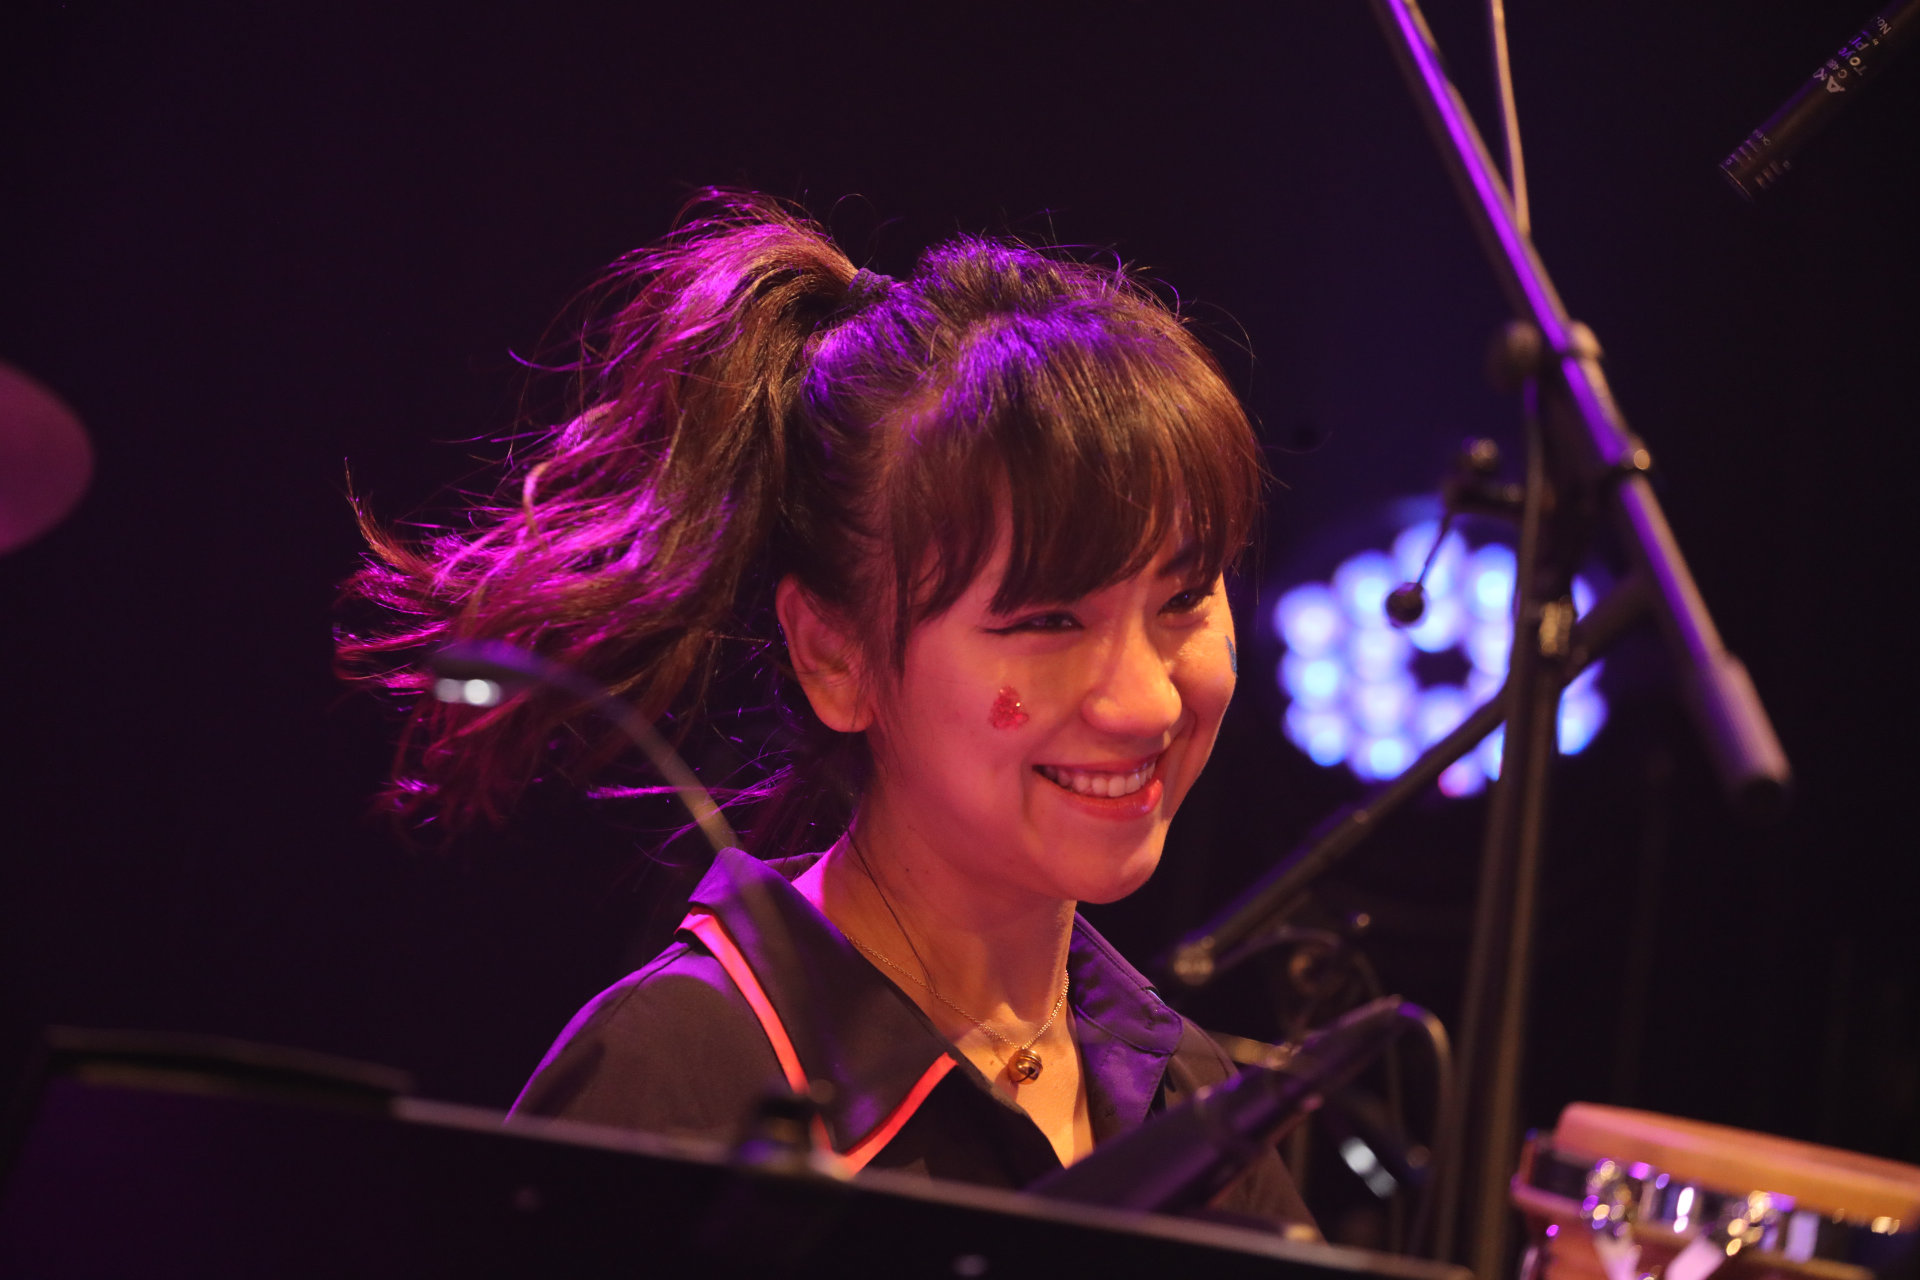 A smiling woman in the orchestra with a sparkling heart on her cheek.